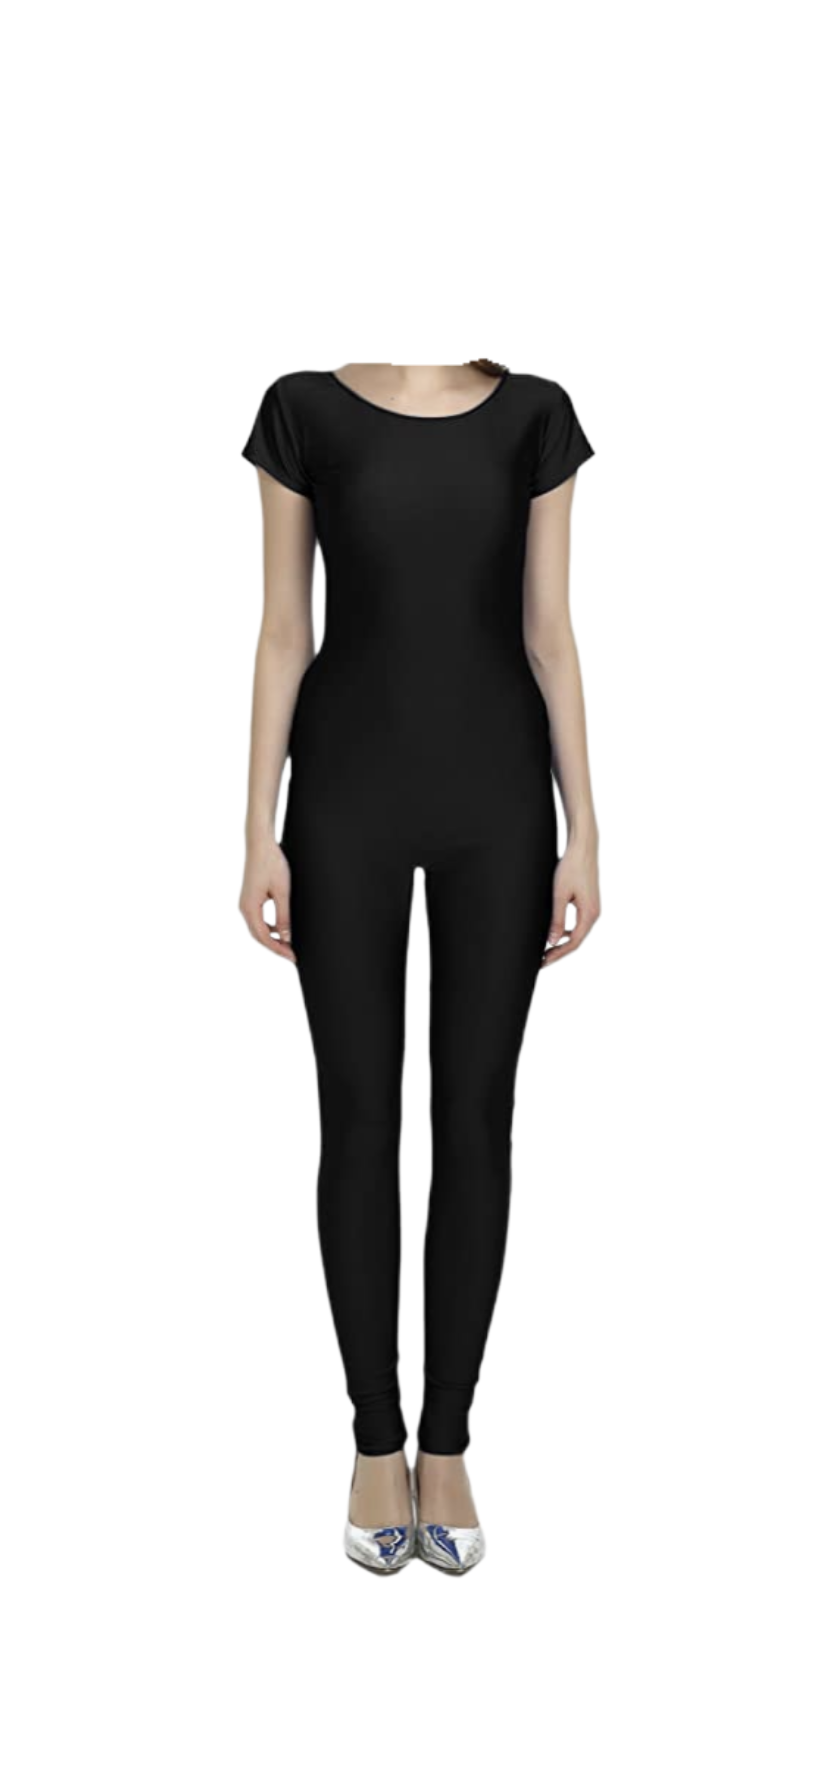 Short Sleeve Scoop Neck Unitard Jumpsuit